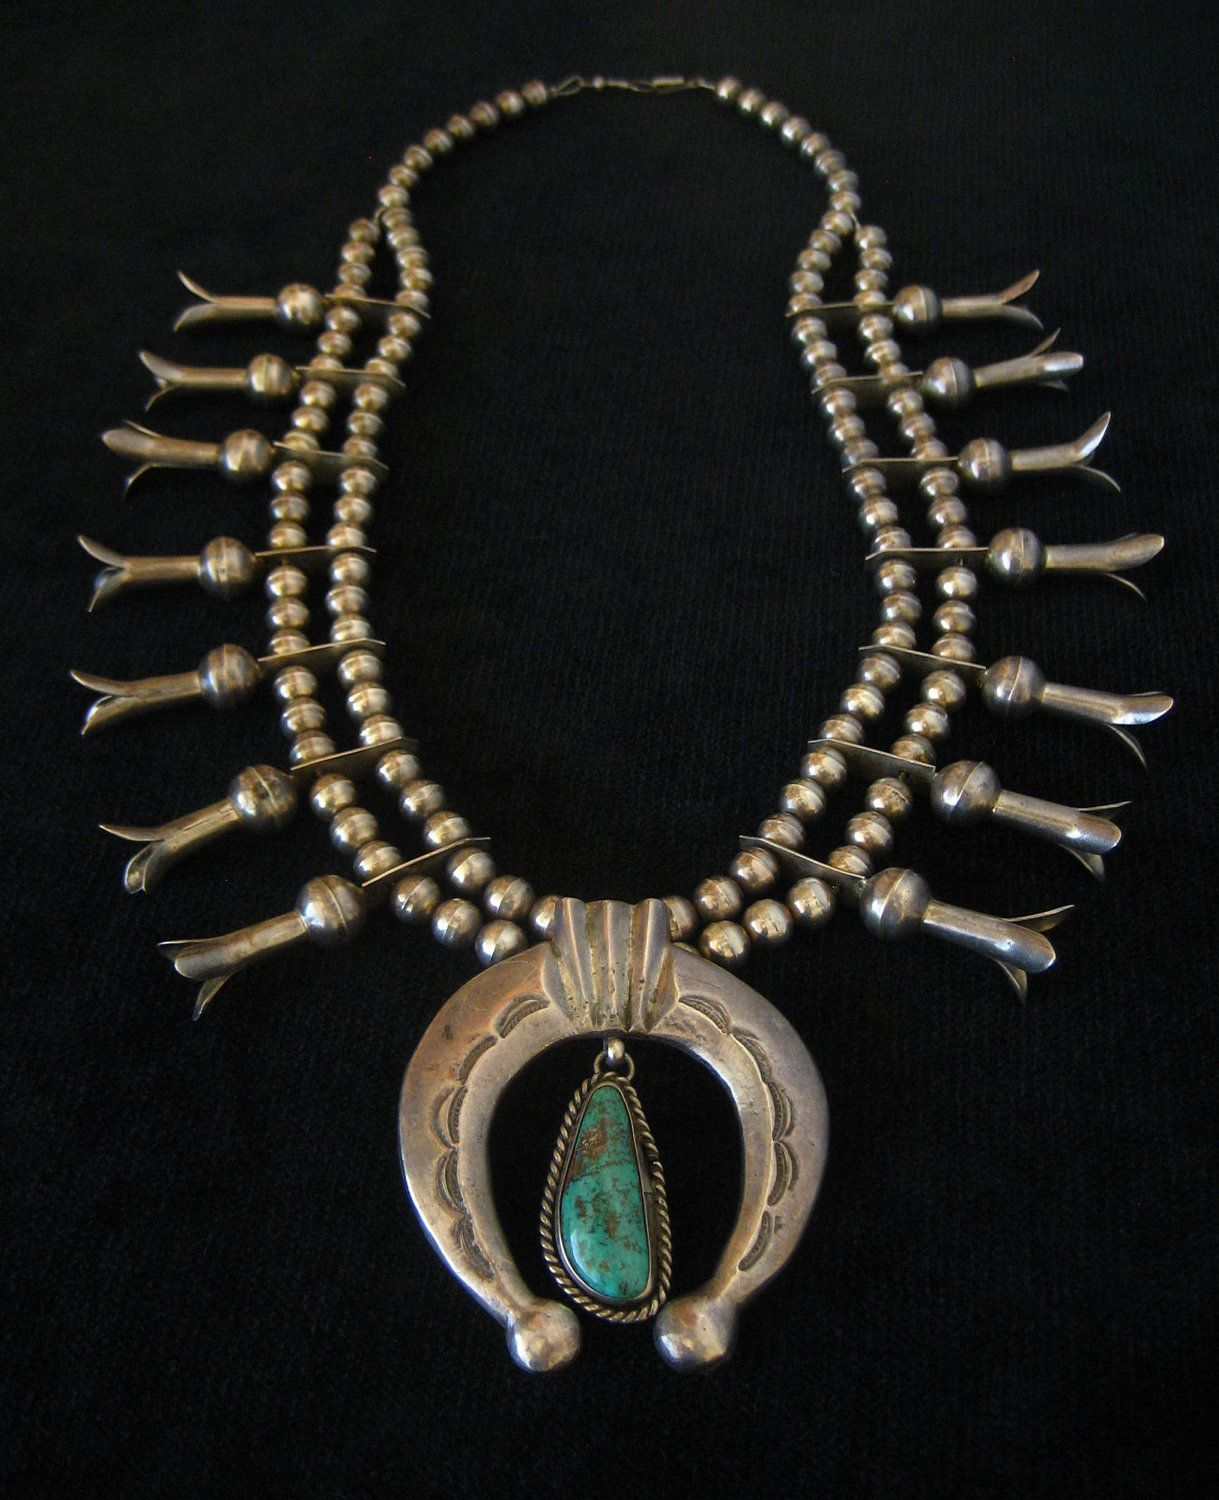 Antique Native American Squash Blossom Necklace Vintage Sterling Silver Turquoise Navajo Indian Naja Jewelry Native American Jewellery Vintage Native American Jewelry Silver Turquoise Jewelry